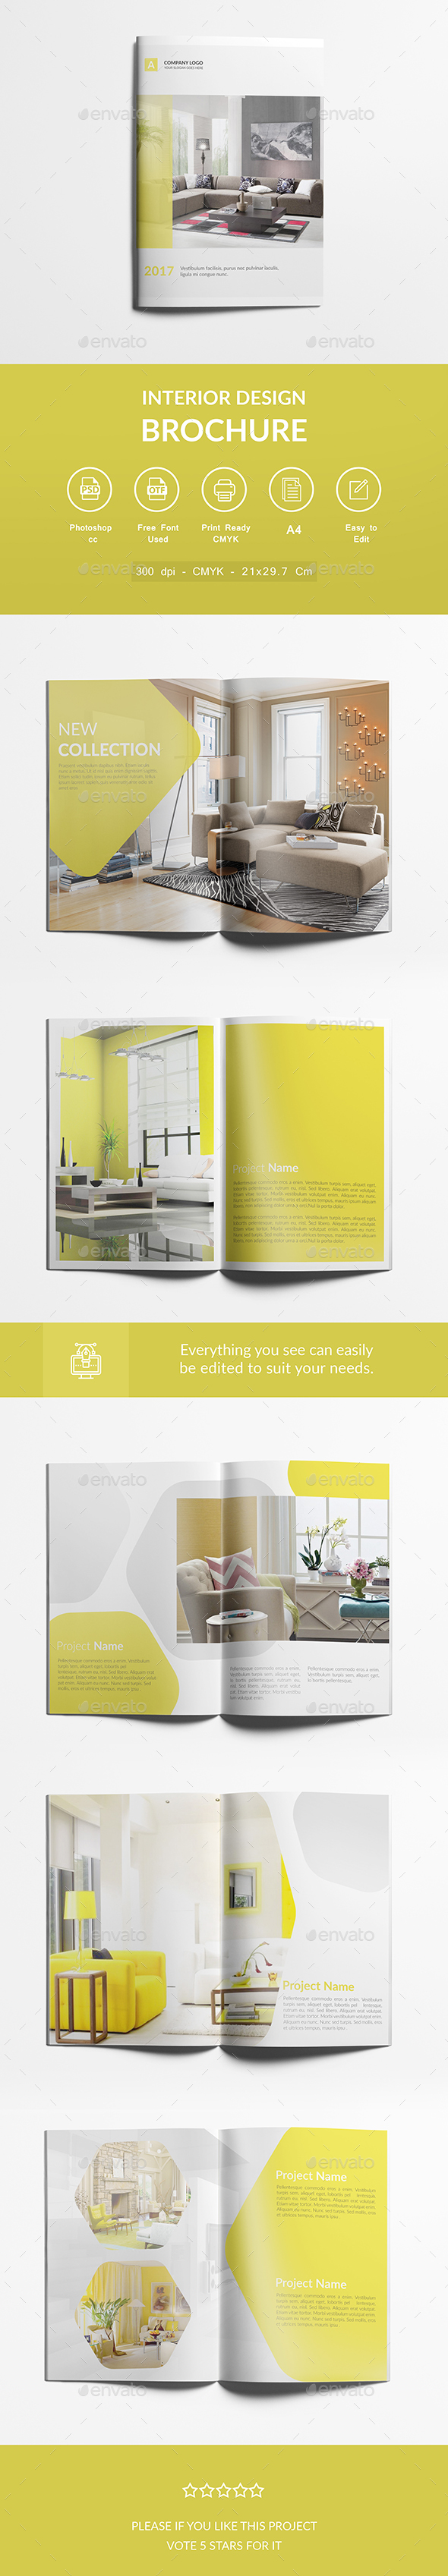 Interior Design Brochure A4 Design Template - Corporate Brochures ...